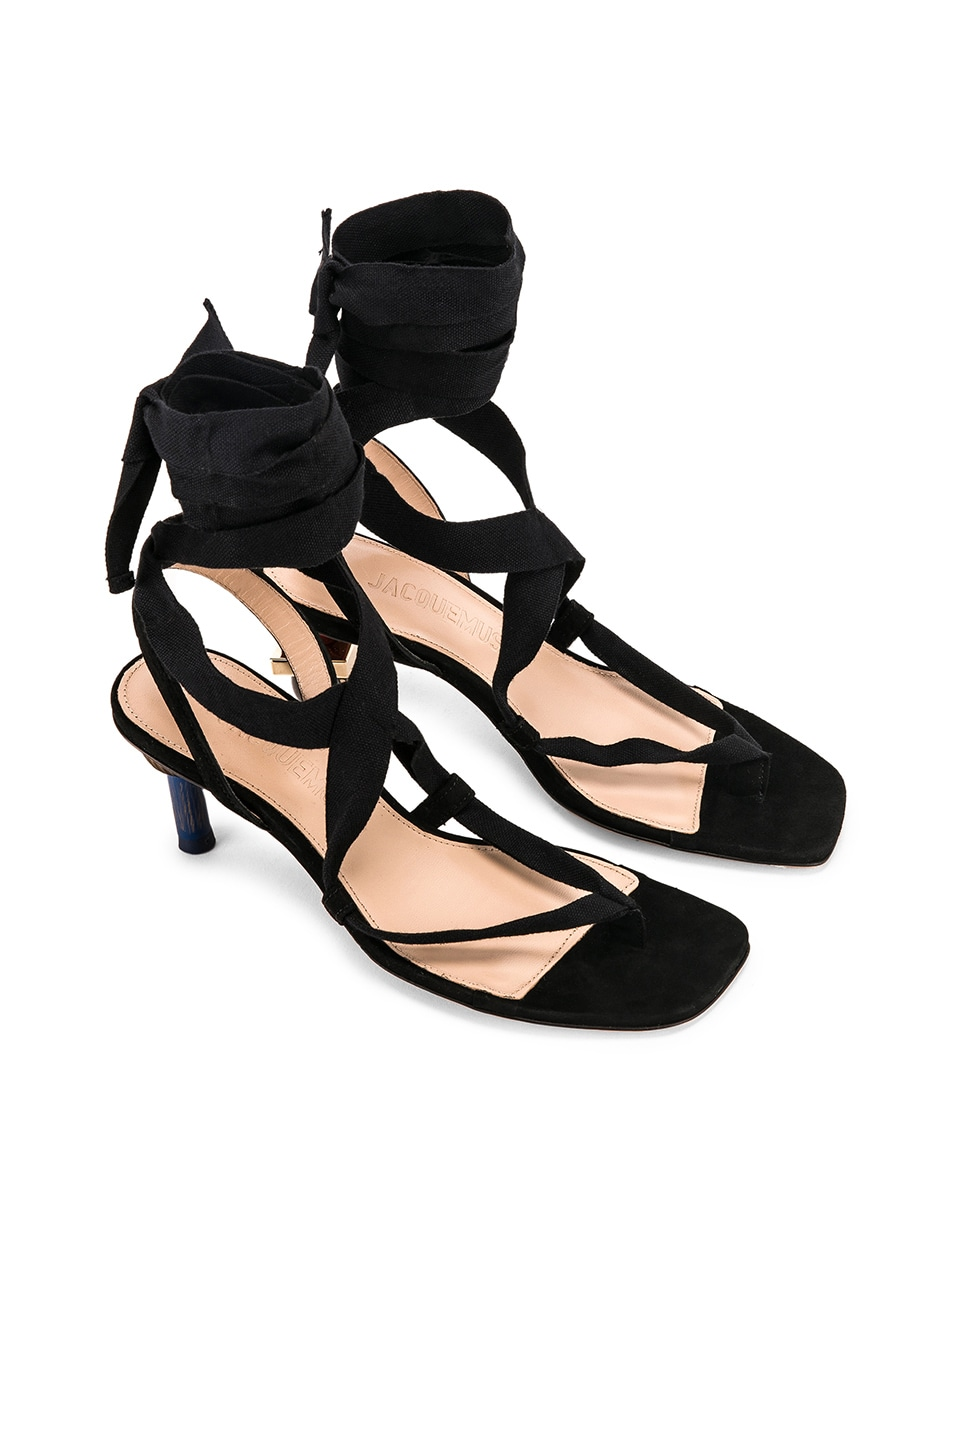 Image 1 of JACQUEMUS Capri Sandals in Black Suede